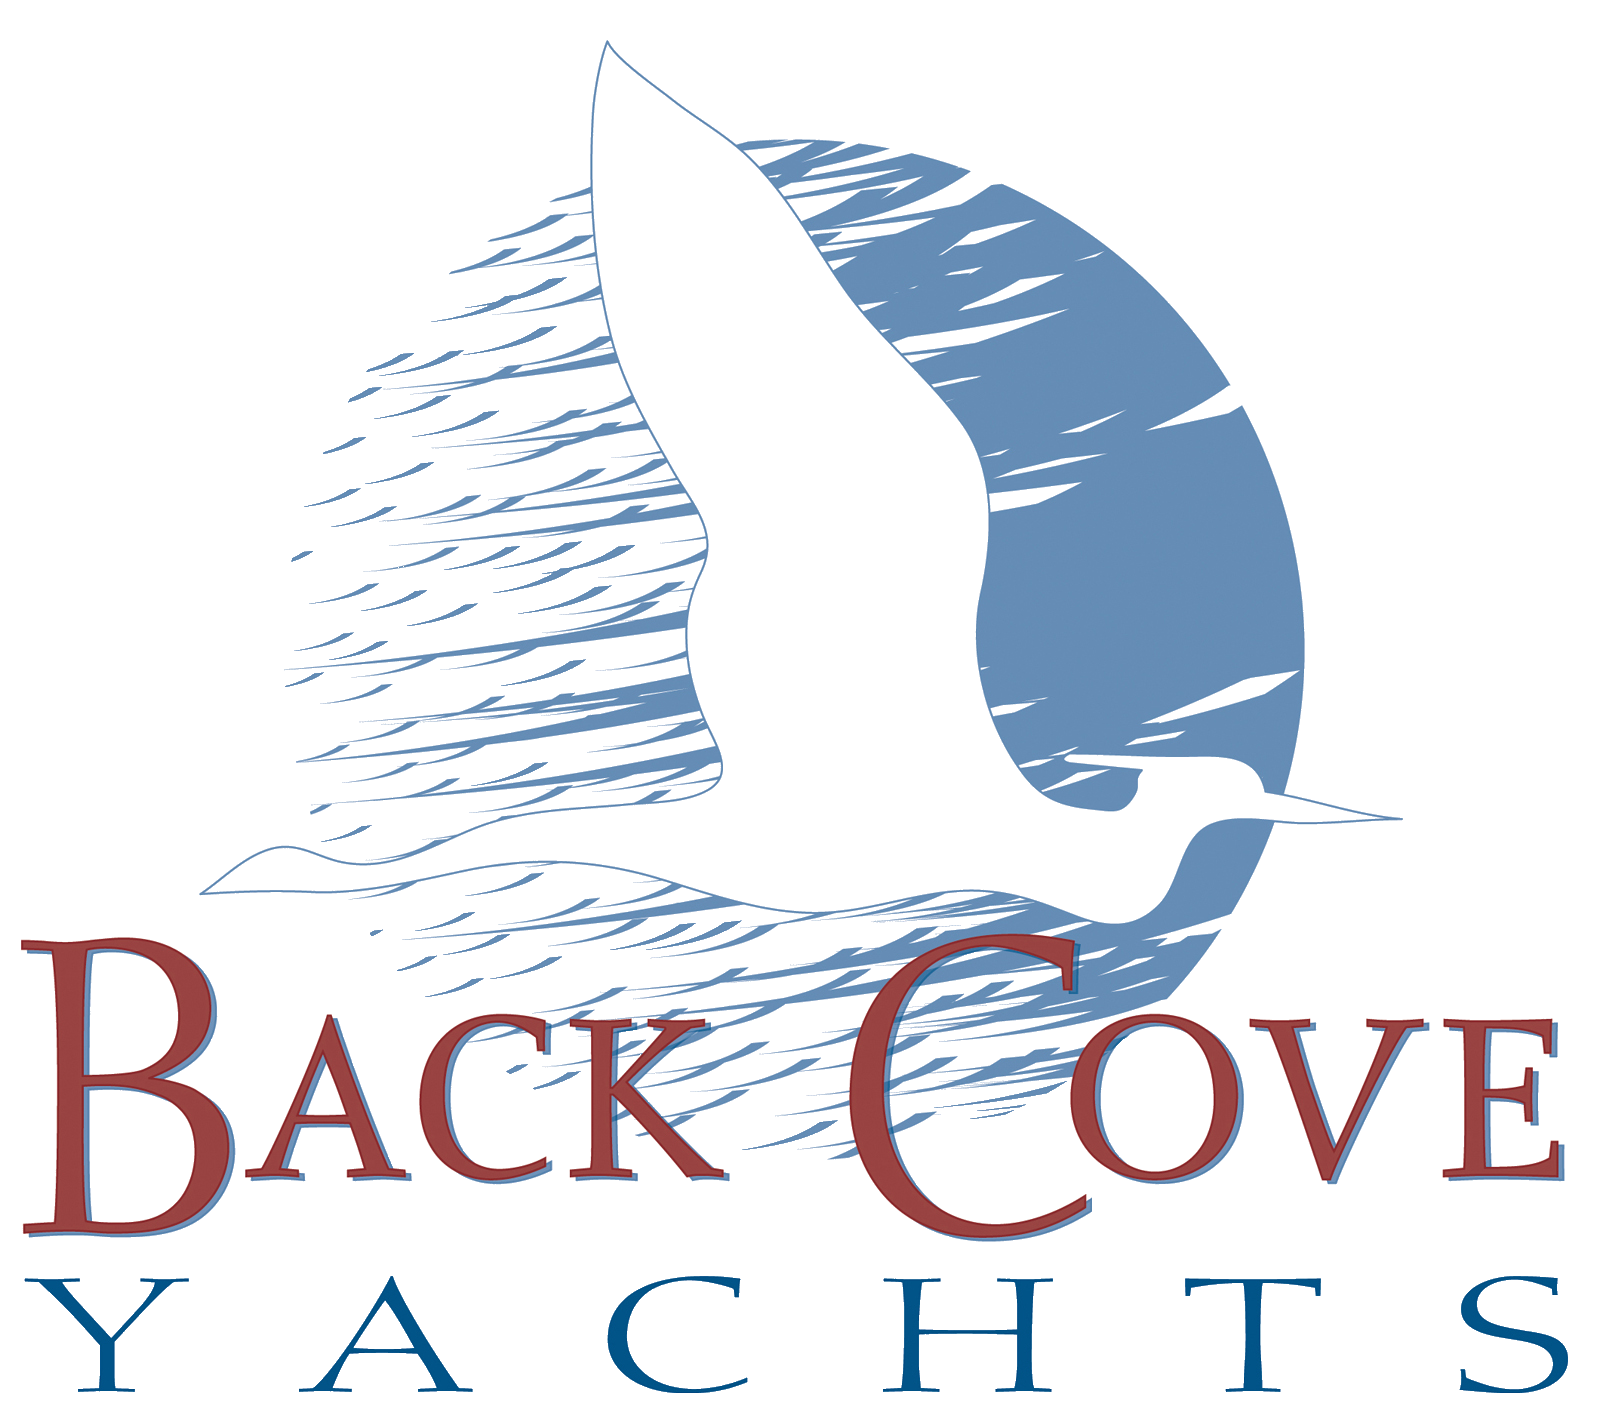 Back Cove brand logo